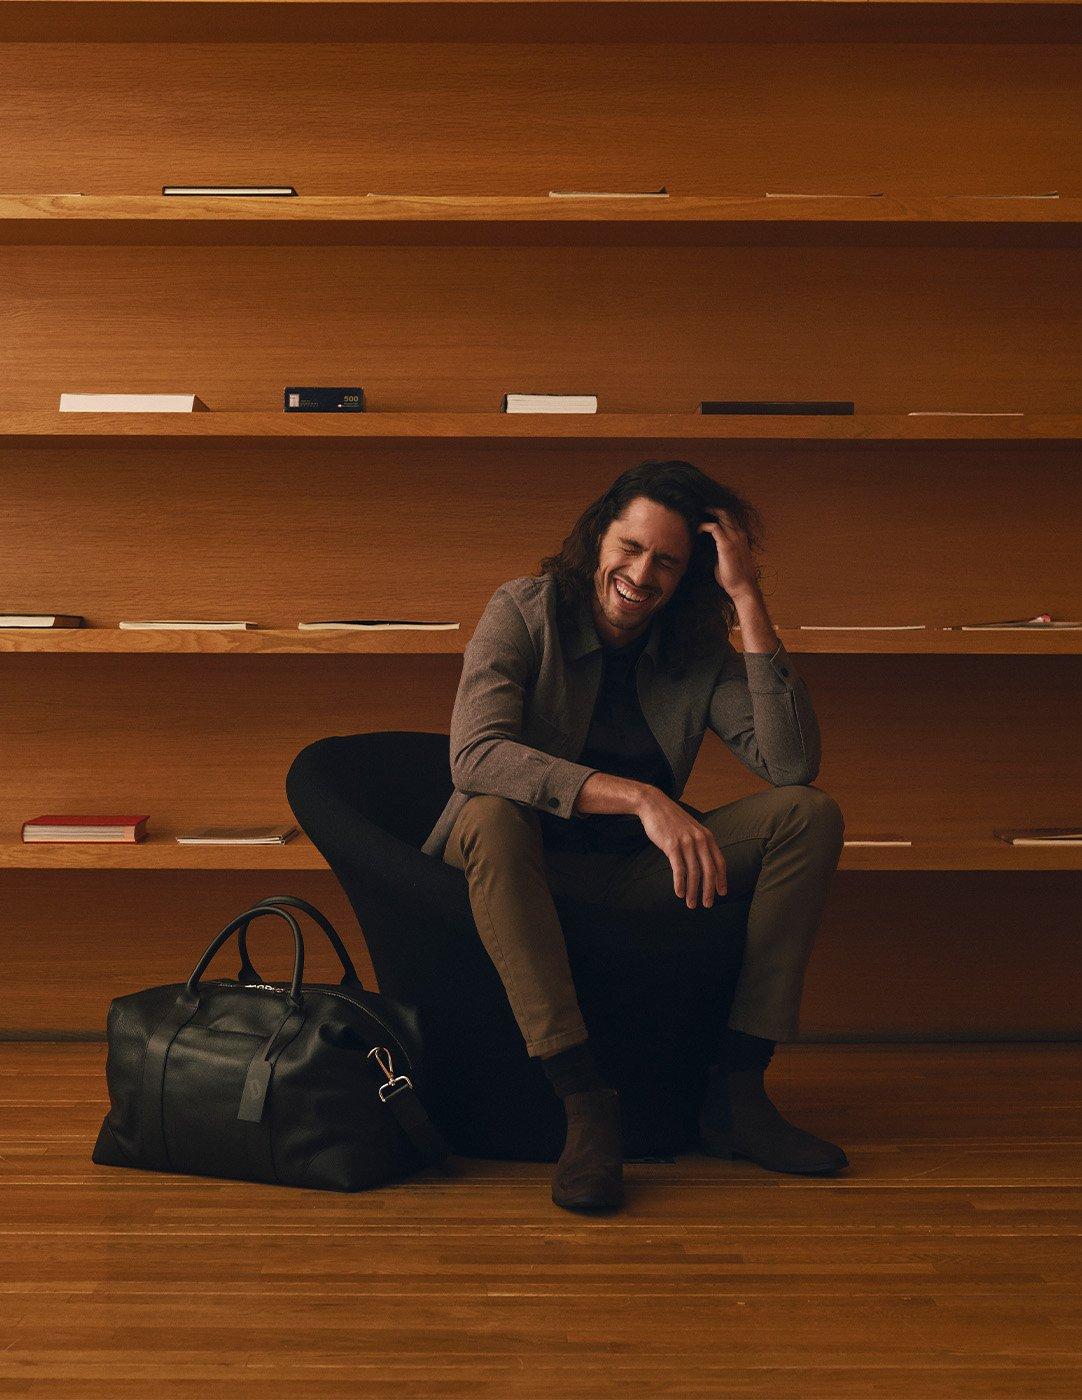 Man sitting in front of book shelves smiling with duffle bag at his feet